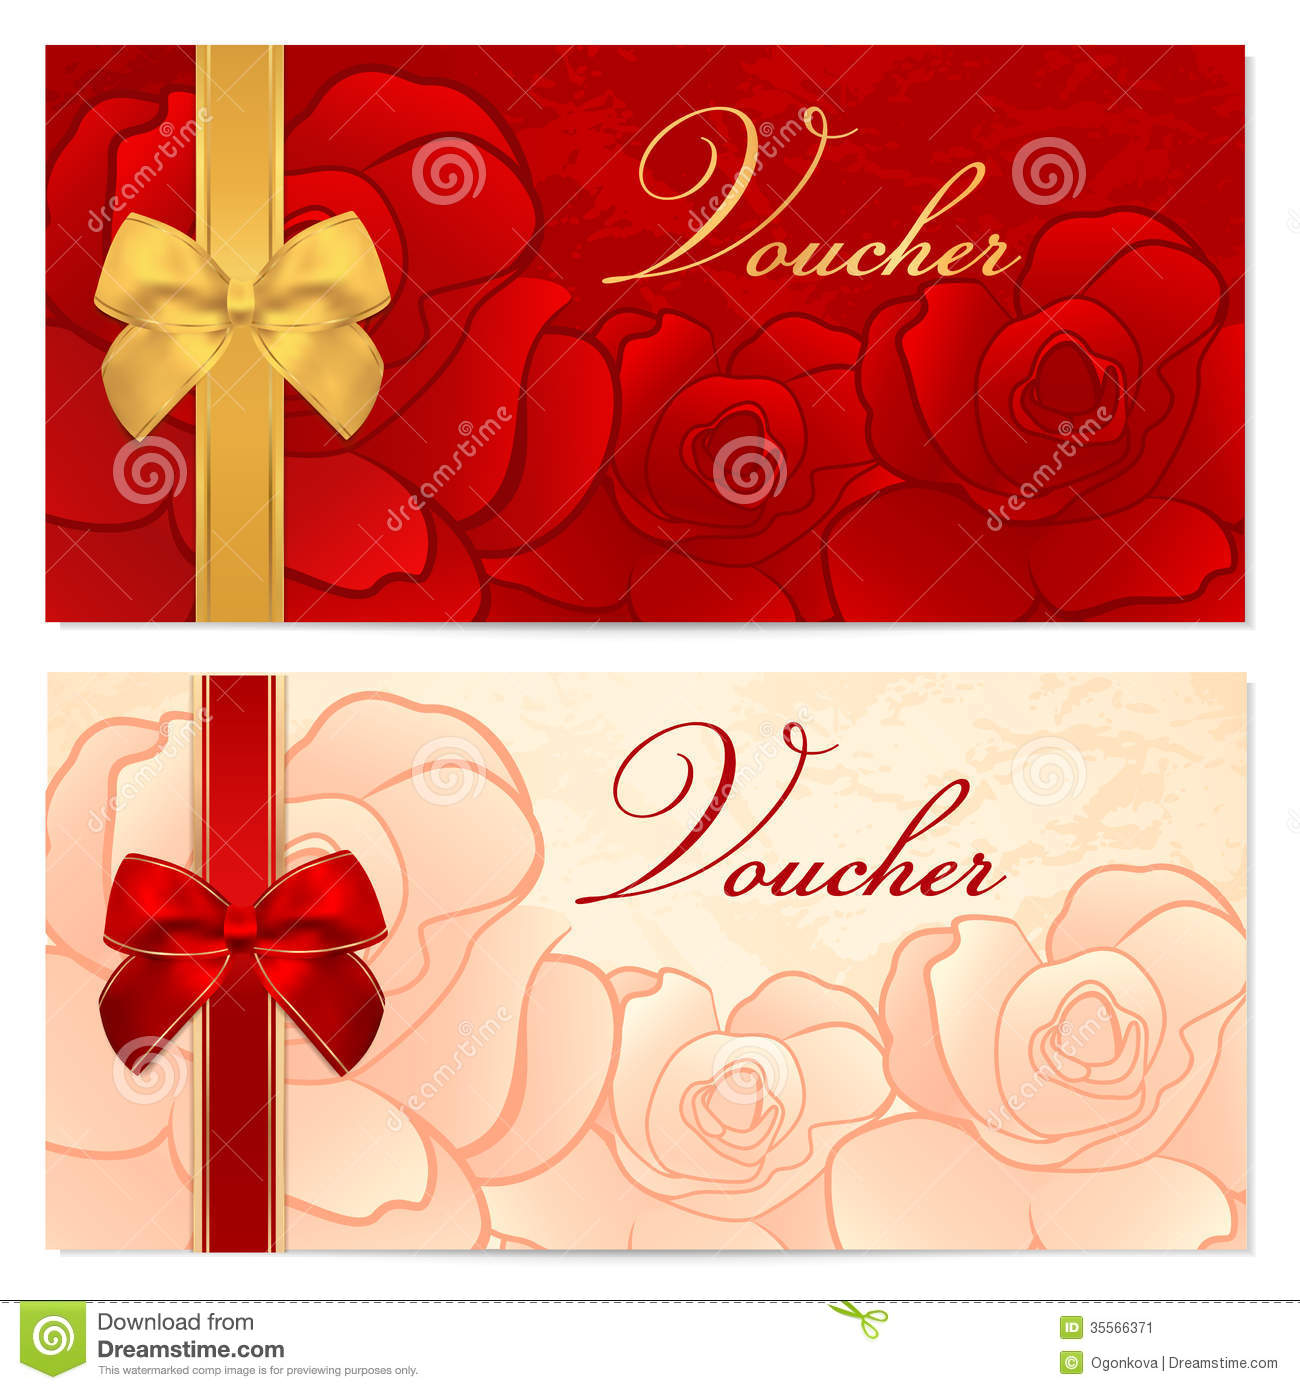 gift certificate voucher template bow pattern royalty gift certificate voucher coupon template bow f stock image